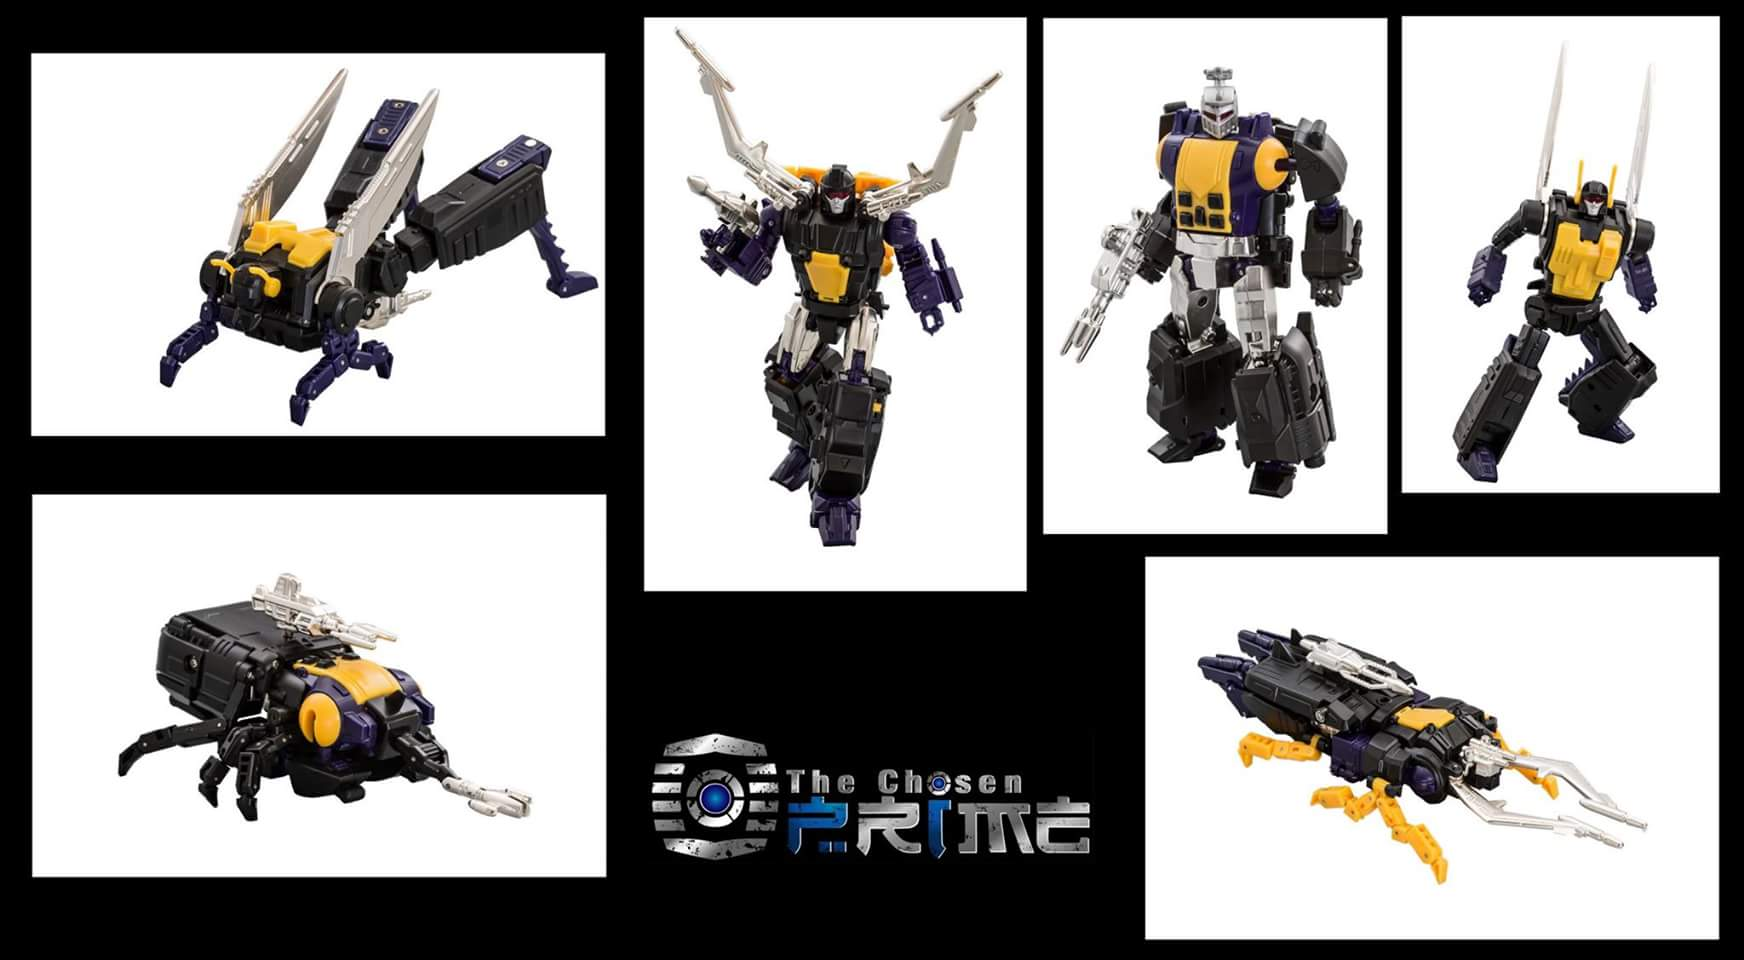 [Mastermind Creations] Produit Tiers - Jouets R-26 Malum Malitia (Potestas, Calcitrant & Inflecto) - aka Insecticons L4sNhzH4